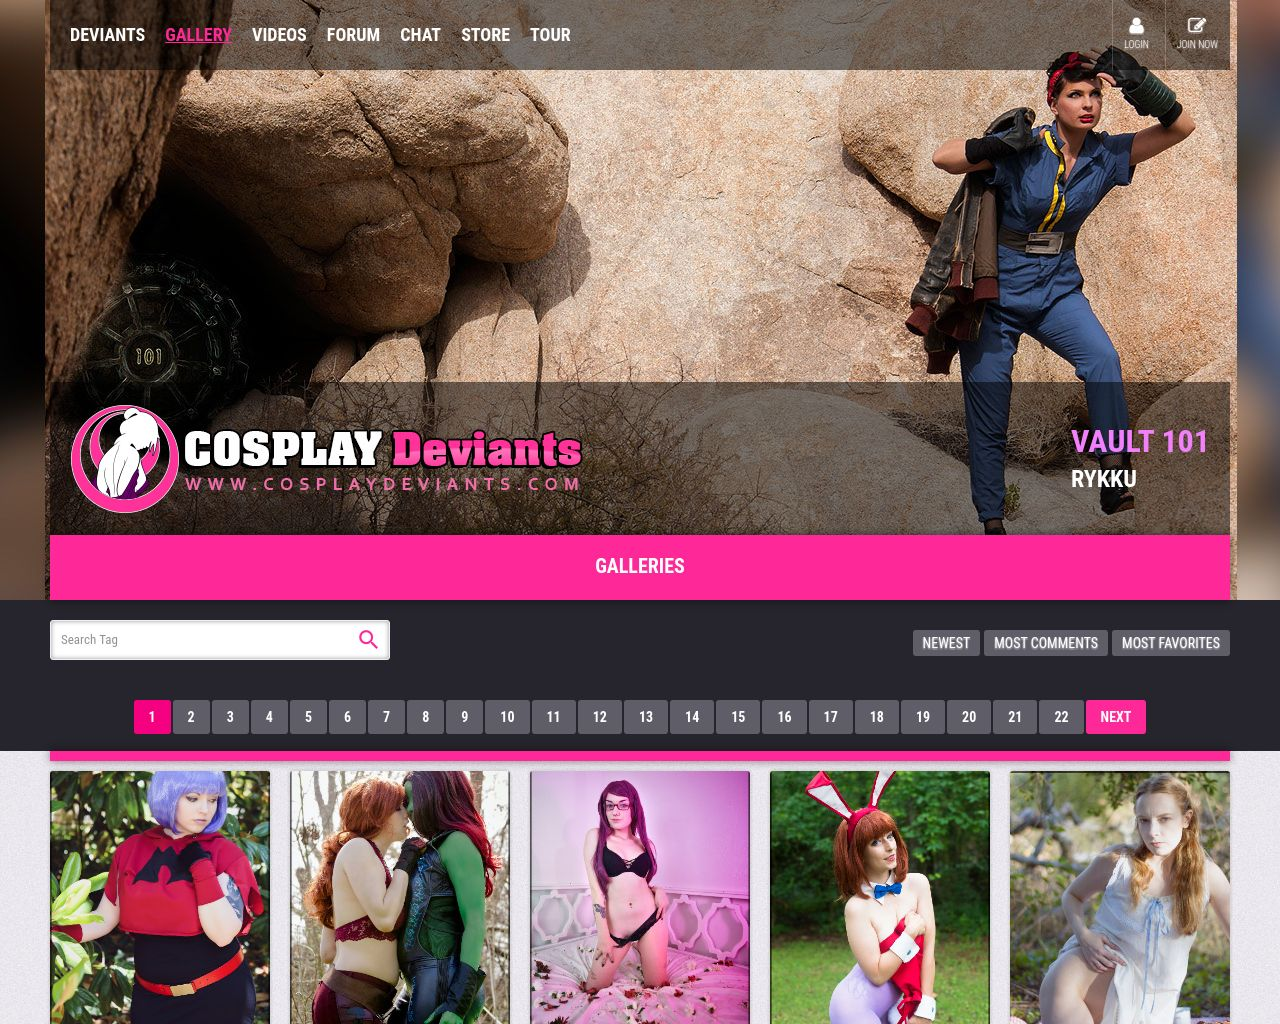 stolen hacked premium password accounts for cosplaydeviants